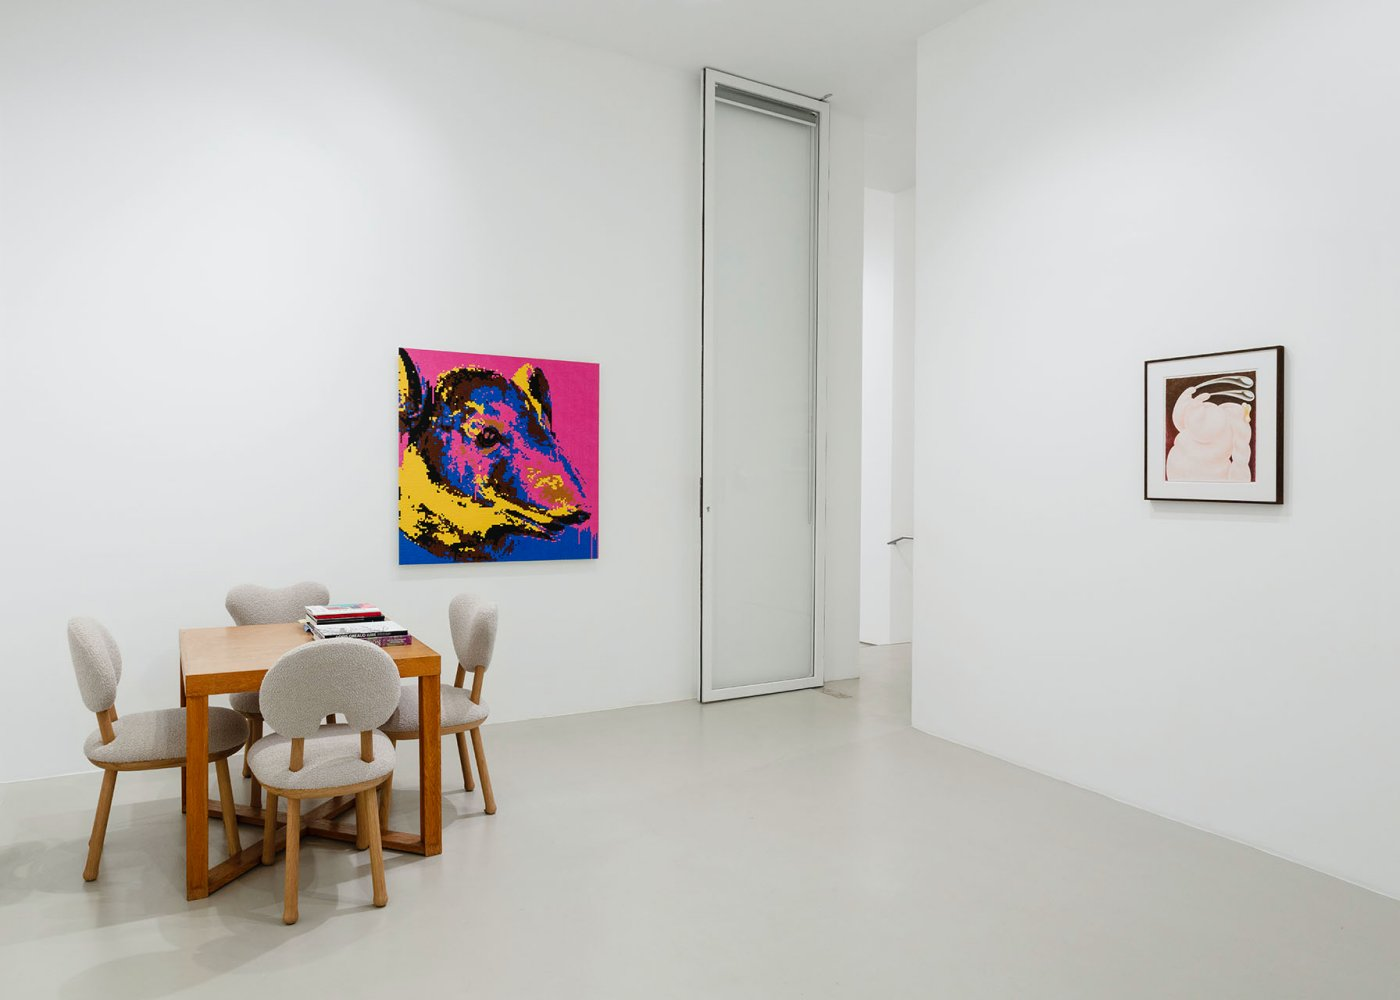 Galerie Max Hetzler FIAC at the gallery 7